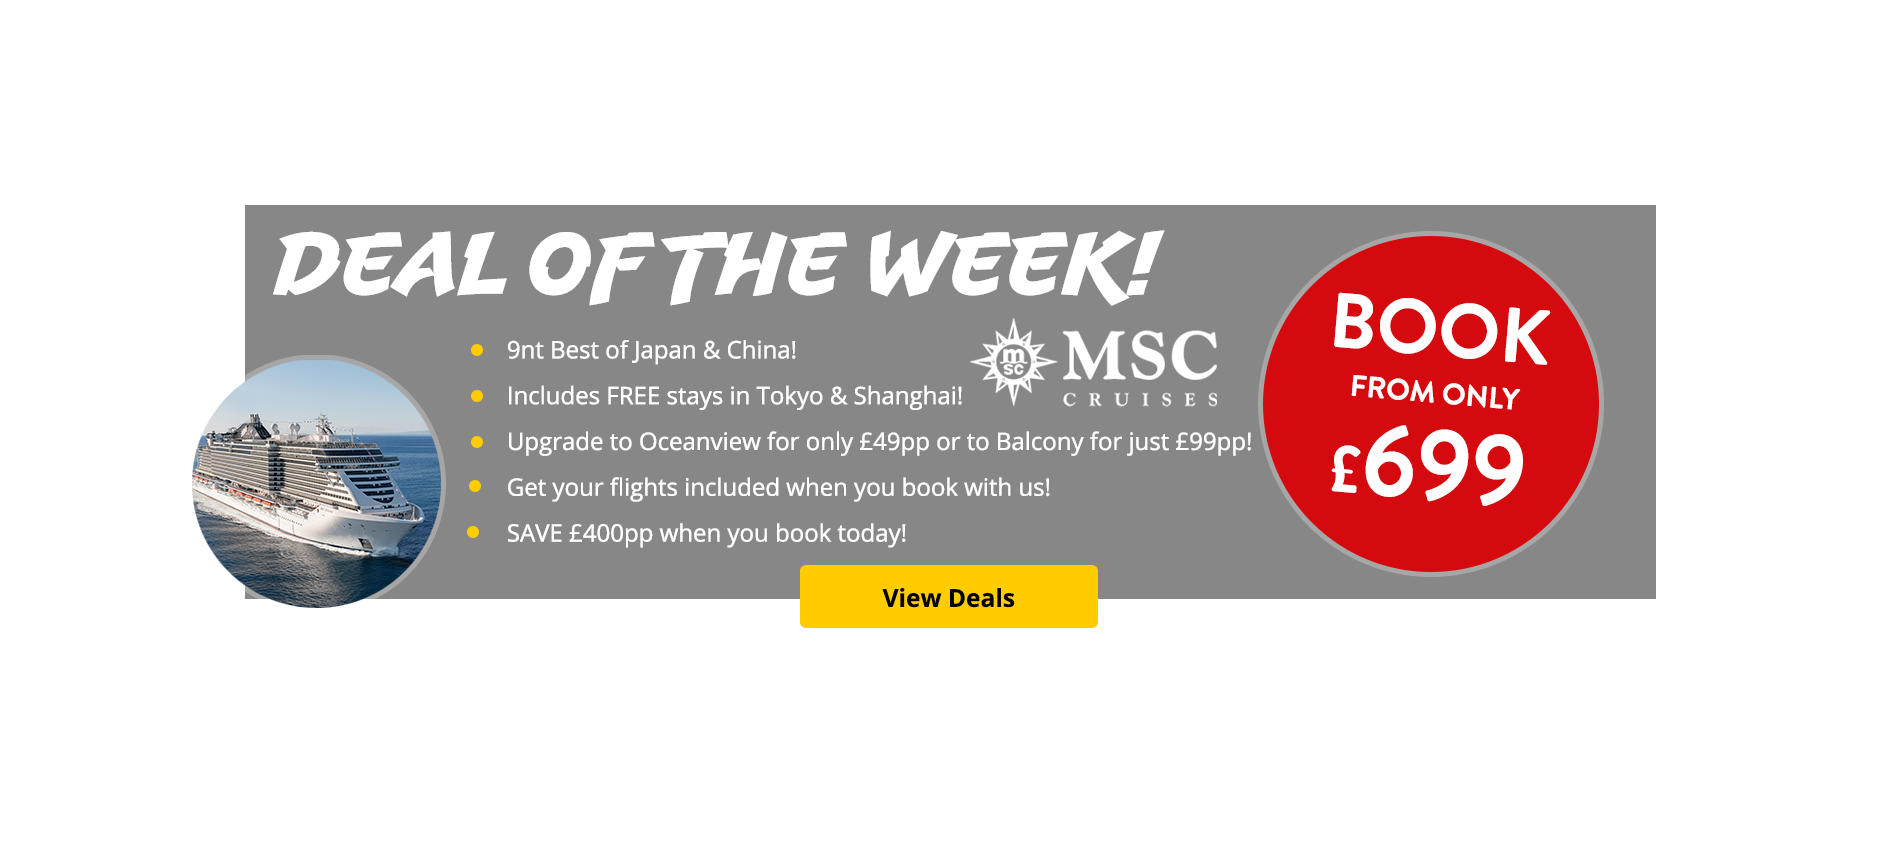 Deal of the week! Best of Japan & China with MSC.